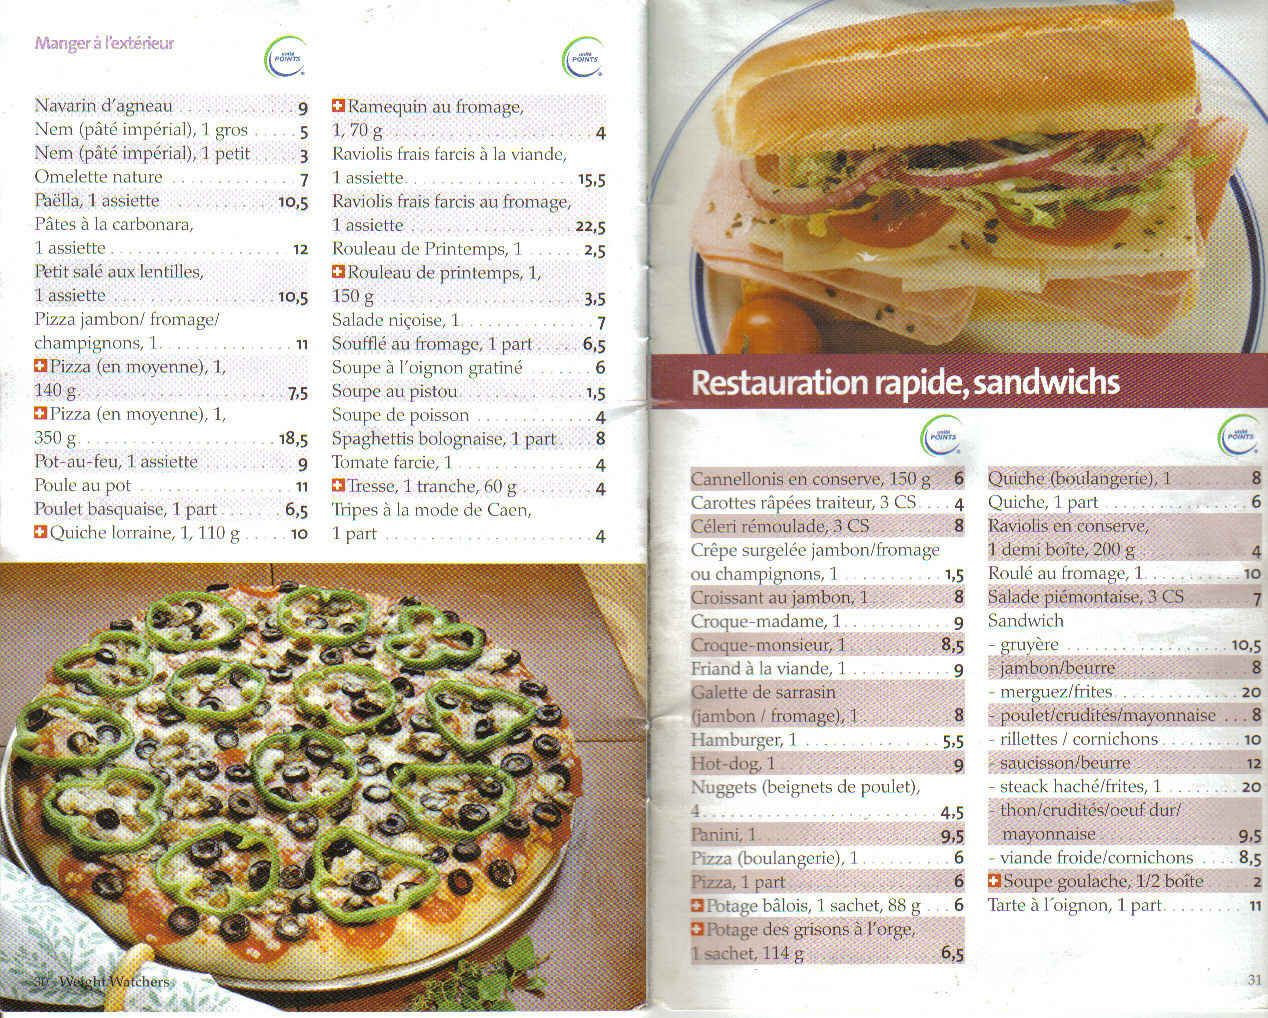 Populaire Liste des points Weight Watchers restauration rapide et sandwichs  EU16